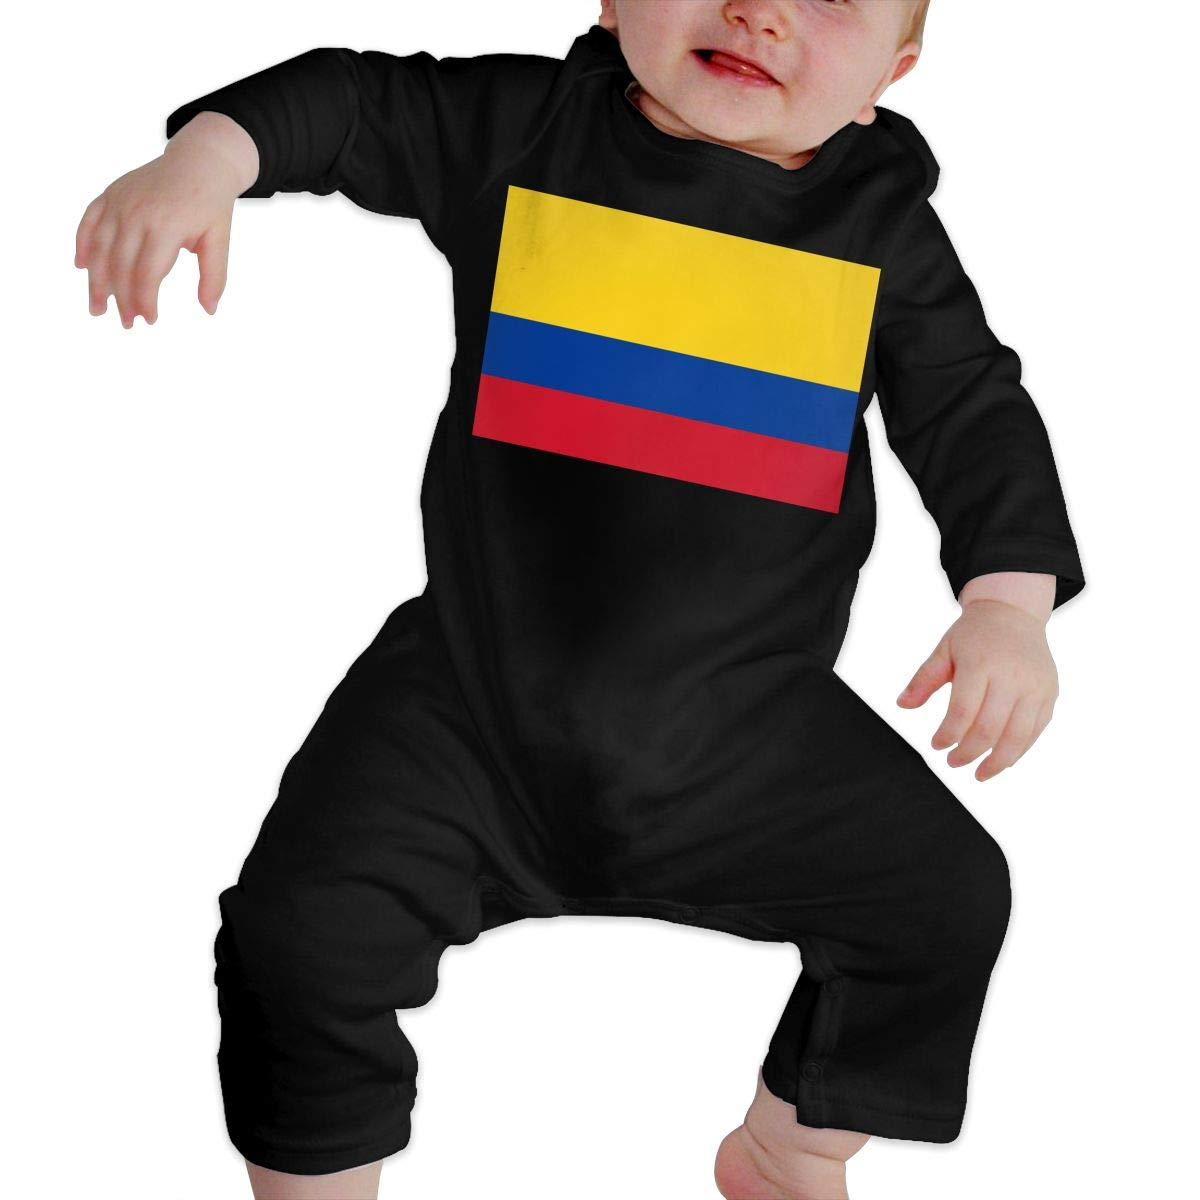 Fashion Colombia Flag Sleepwear U99oi-9 Long Sleeve Cotton Rompers for Unisex Baby